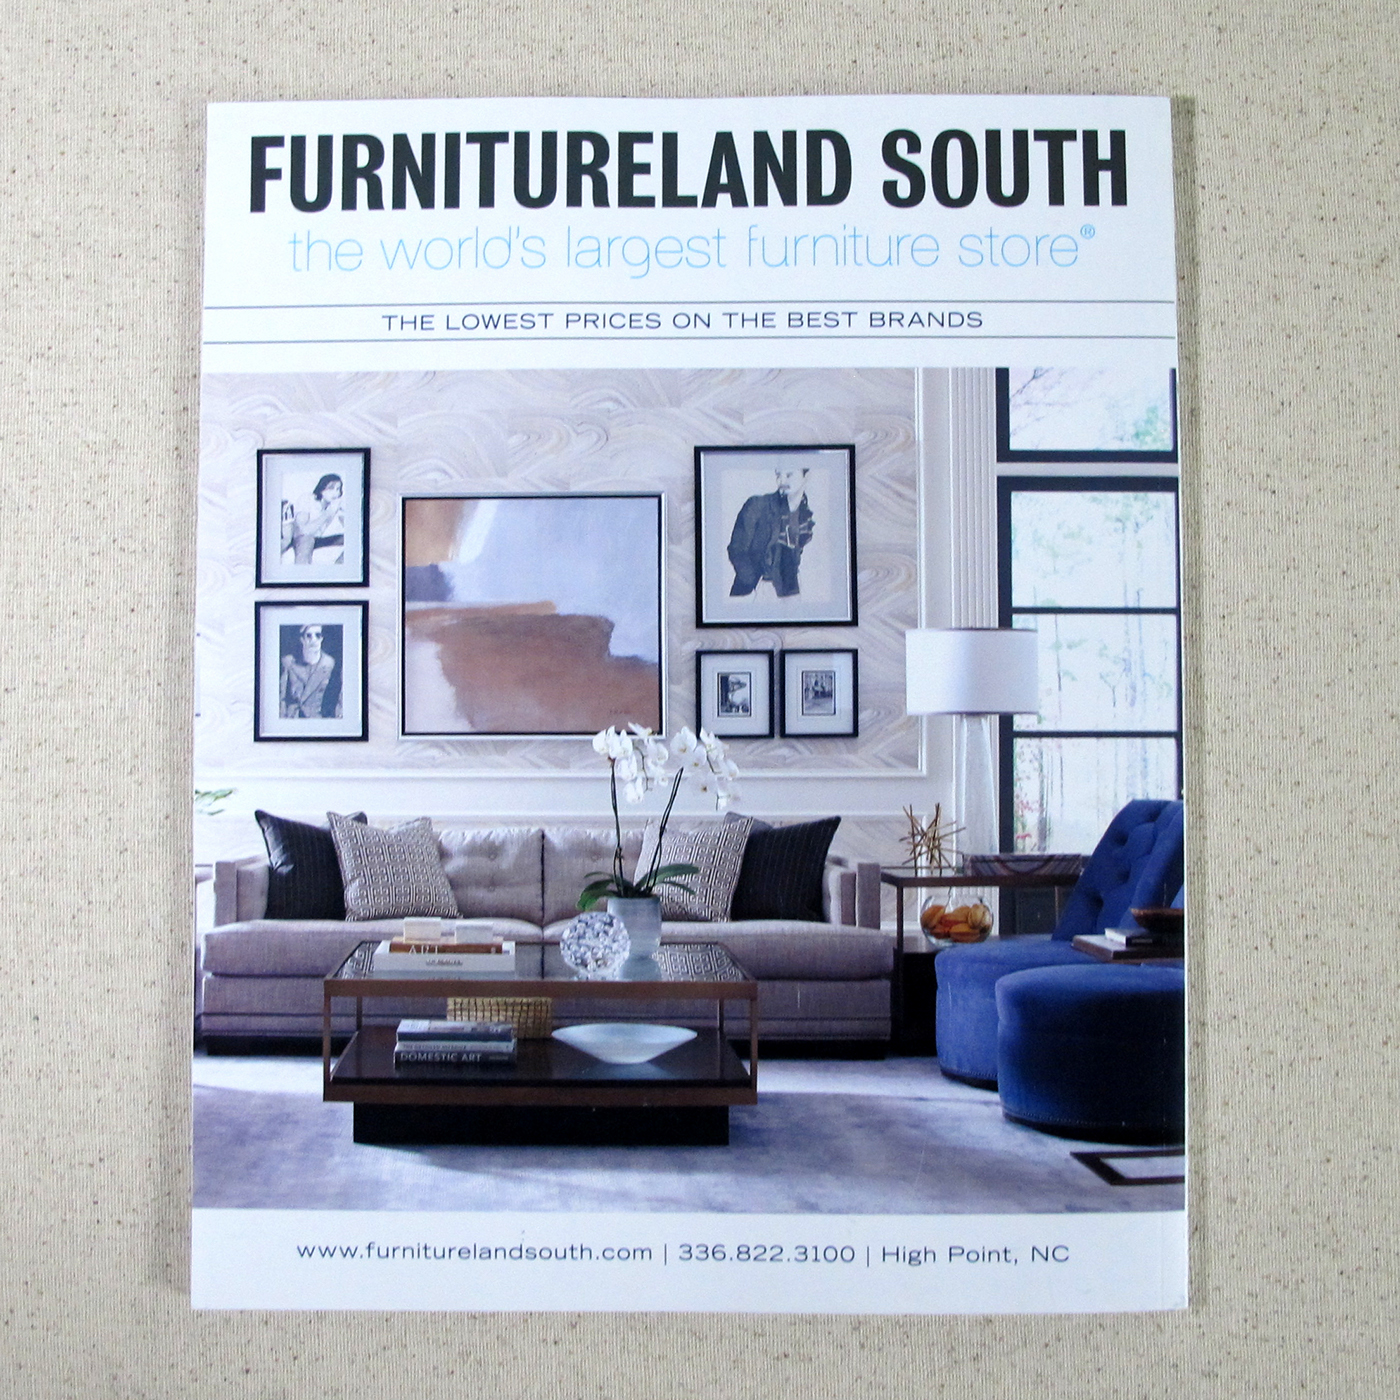 Print Advertising For Furnitureland South On Behance